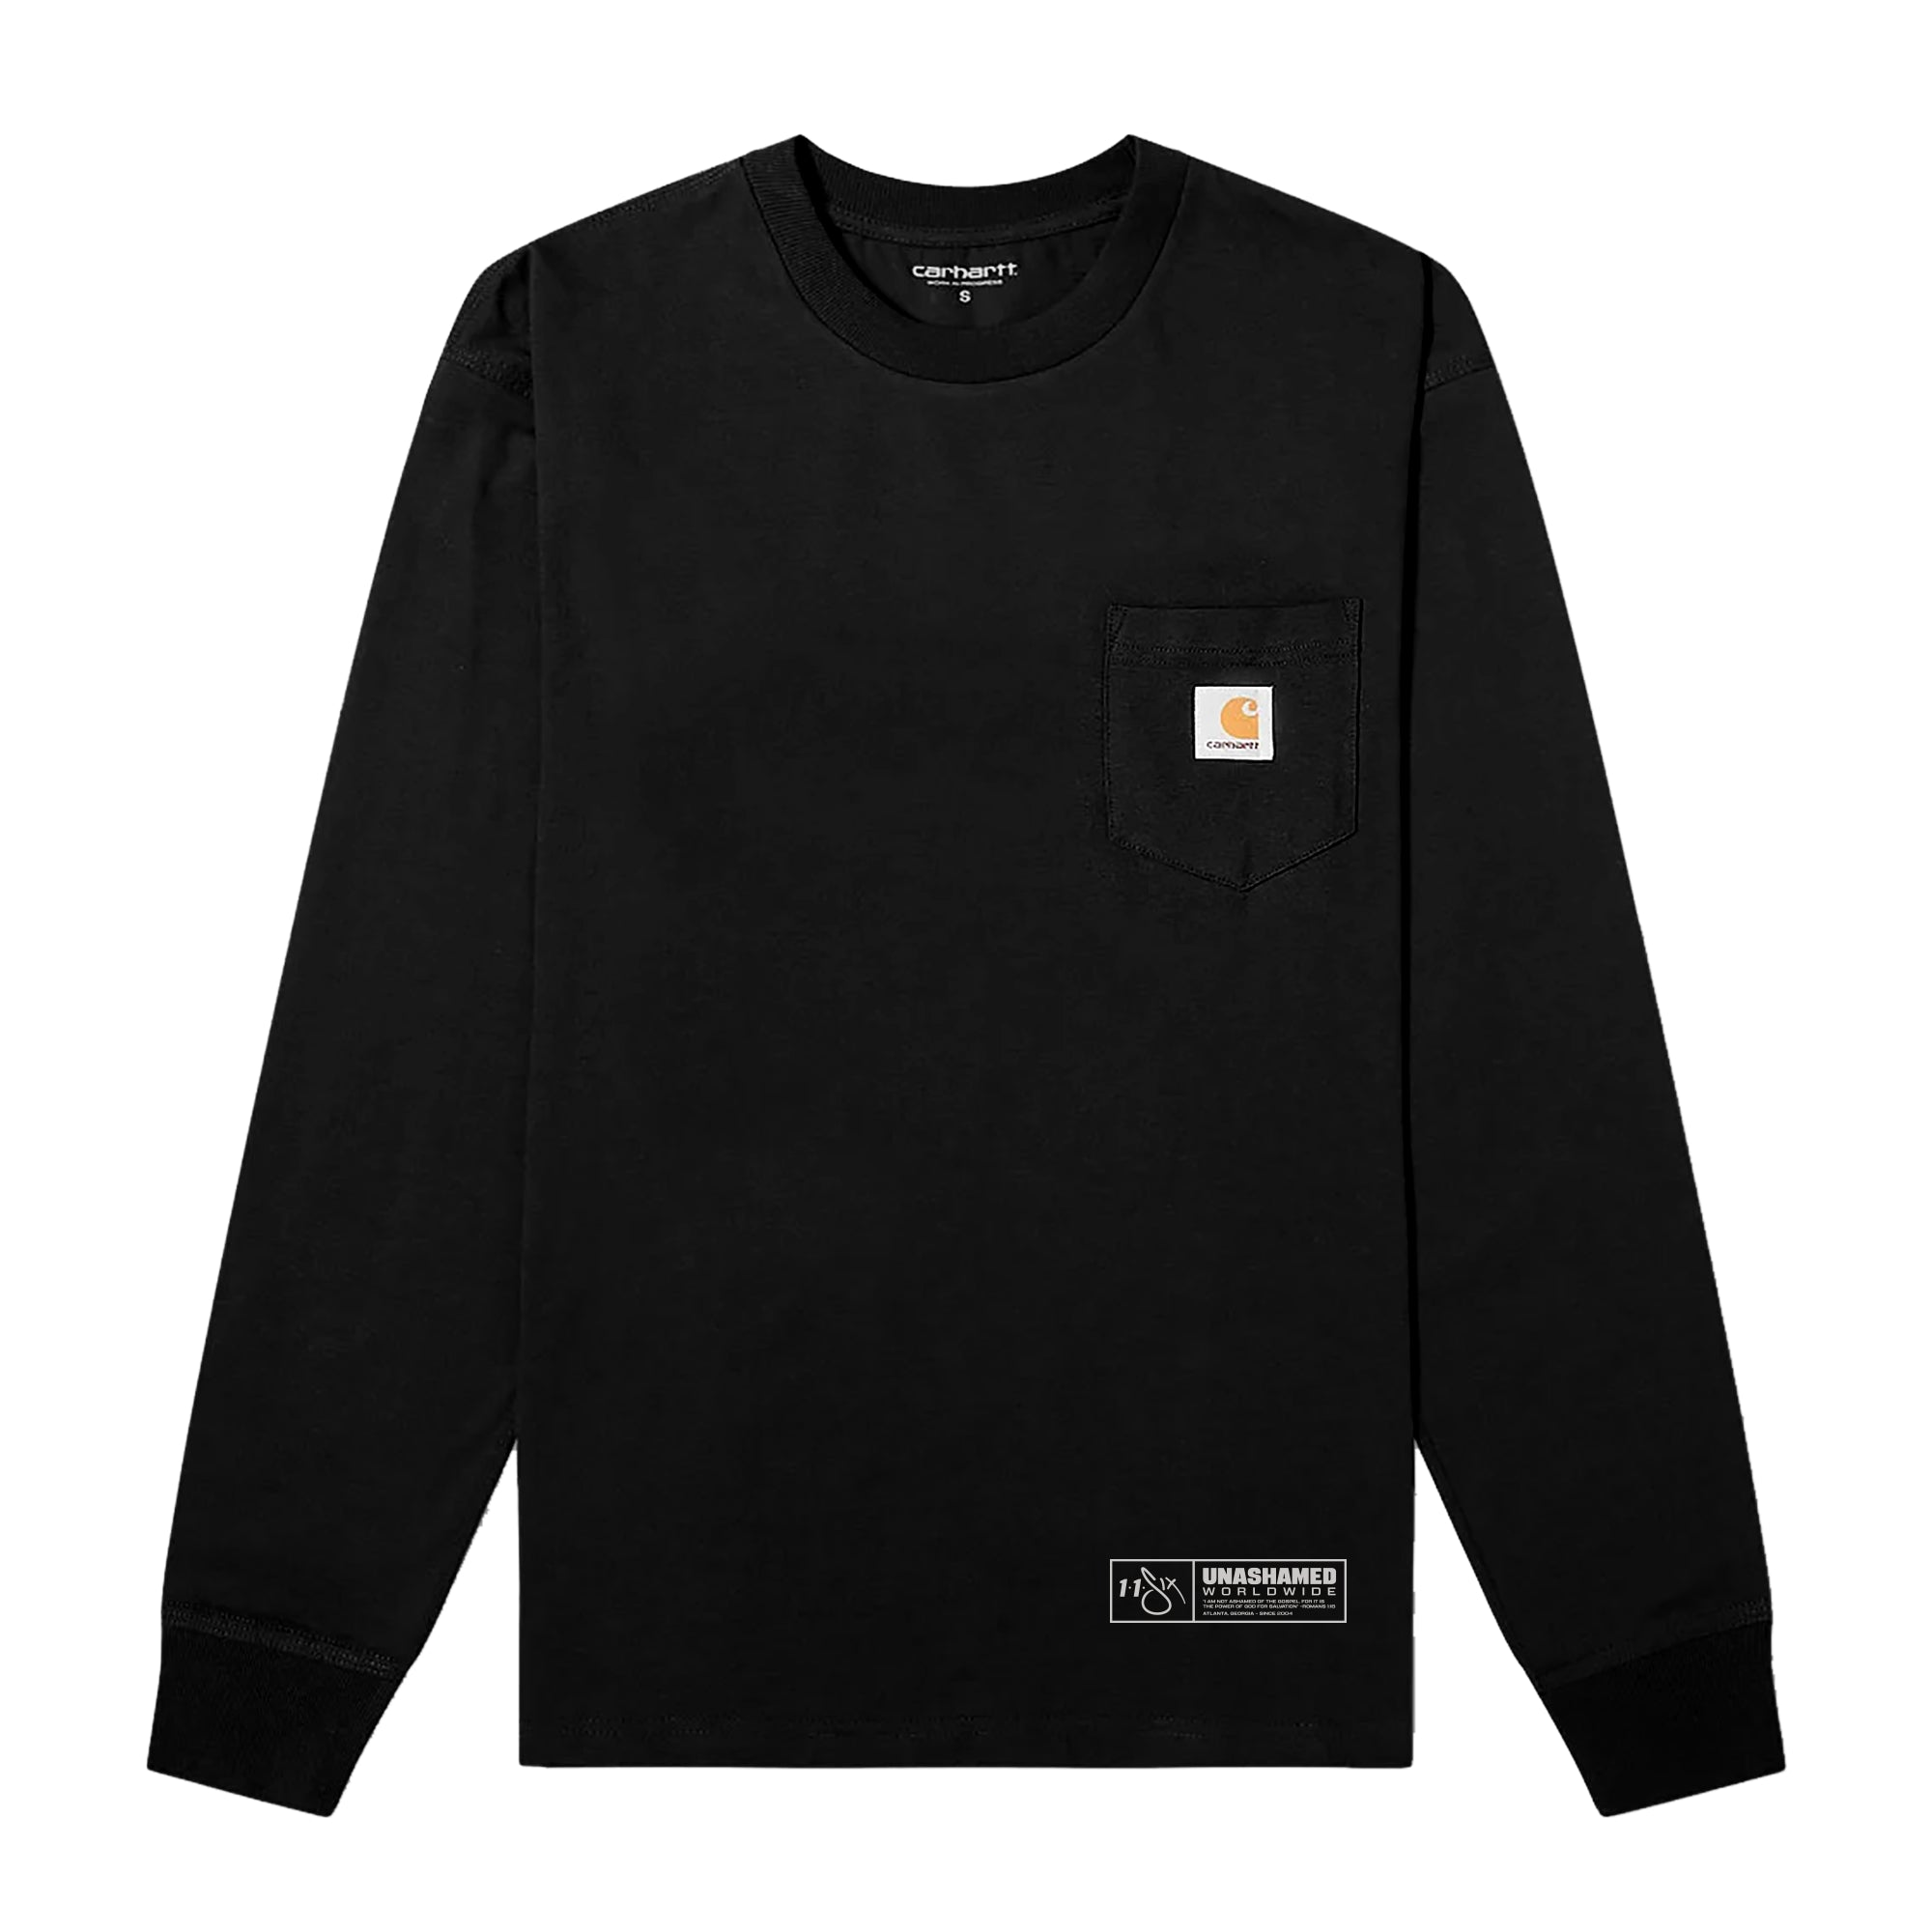 116 x Carhartt 'Not For Human Masters' Long Sleeve Tee